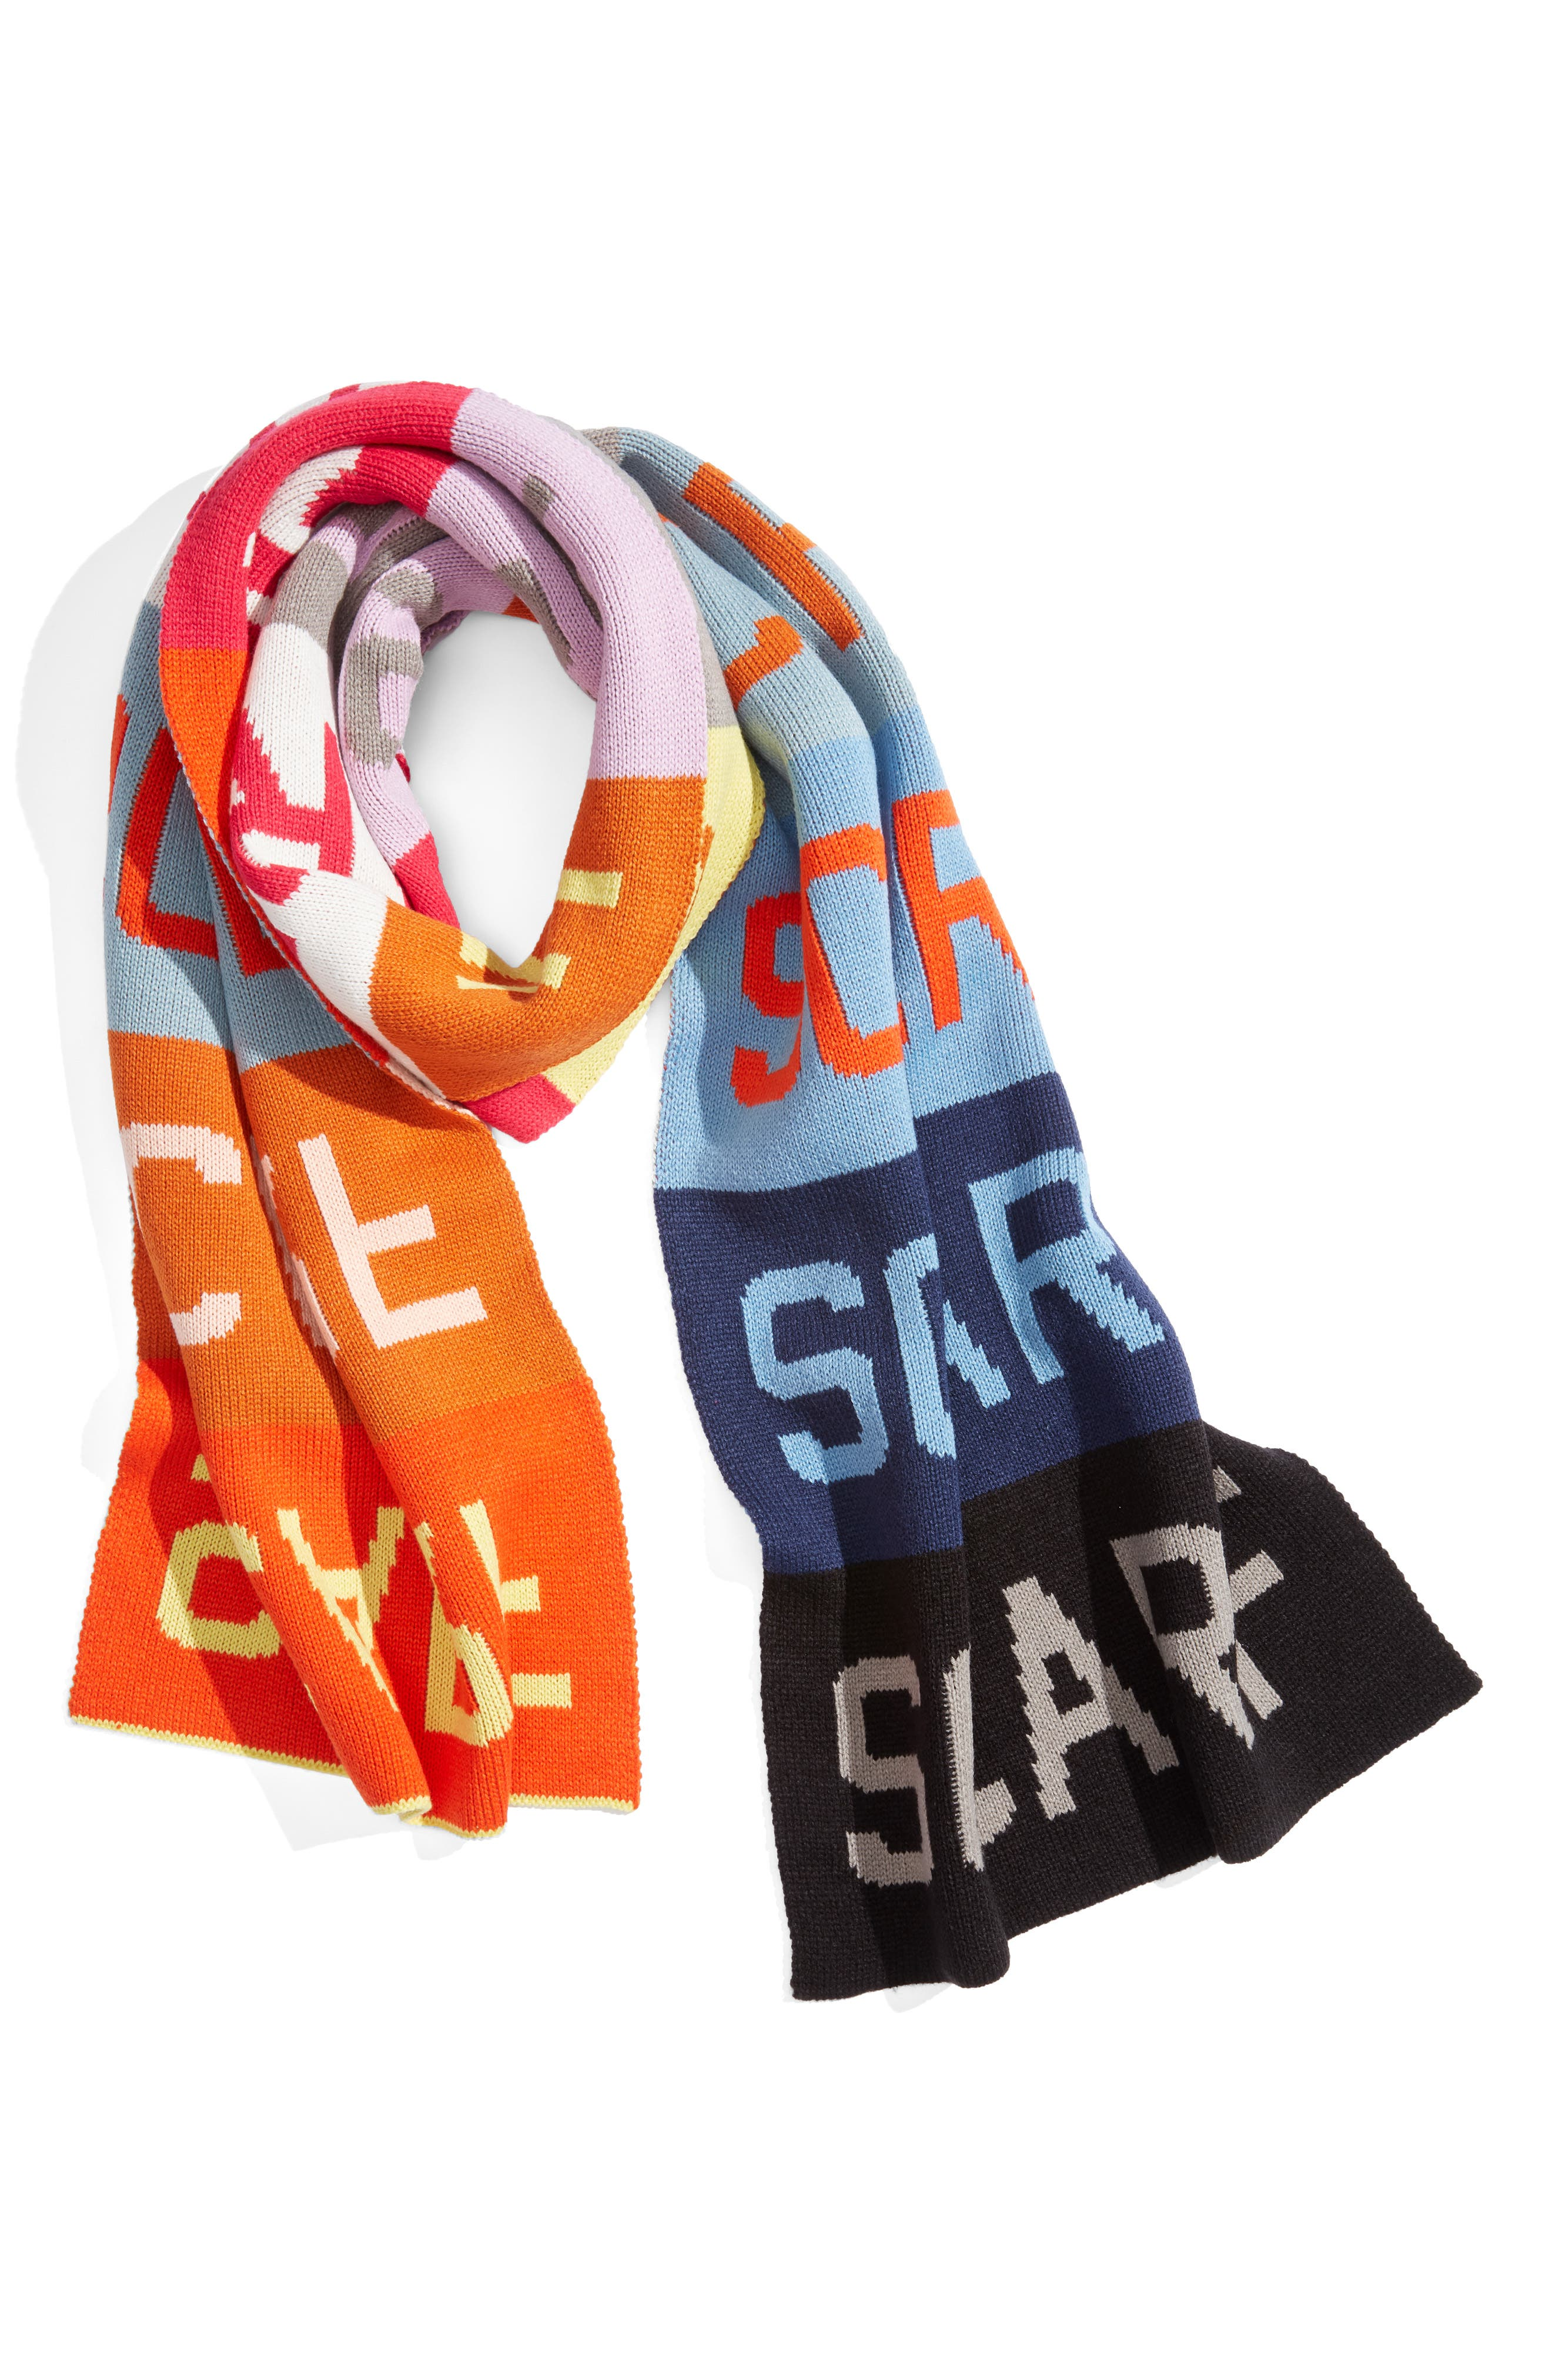 Scarf Scarf Scarf Scarf,                             Alternate thumbnail 2, color,                             MULTI VIVID